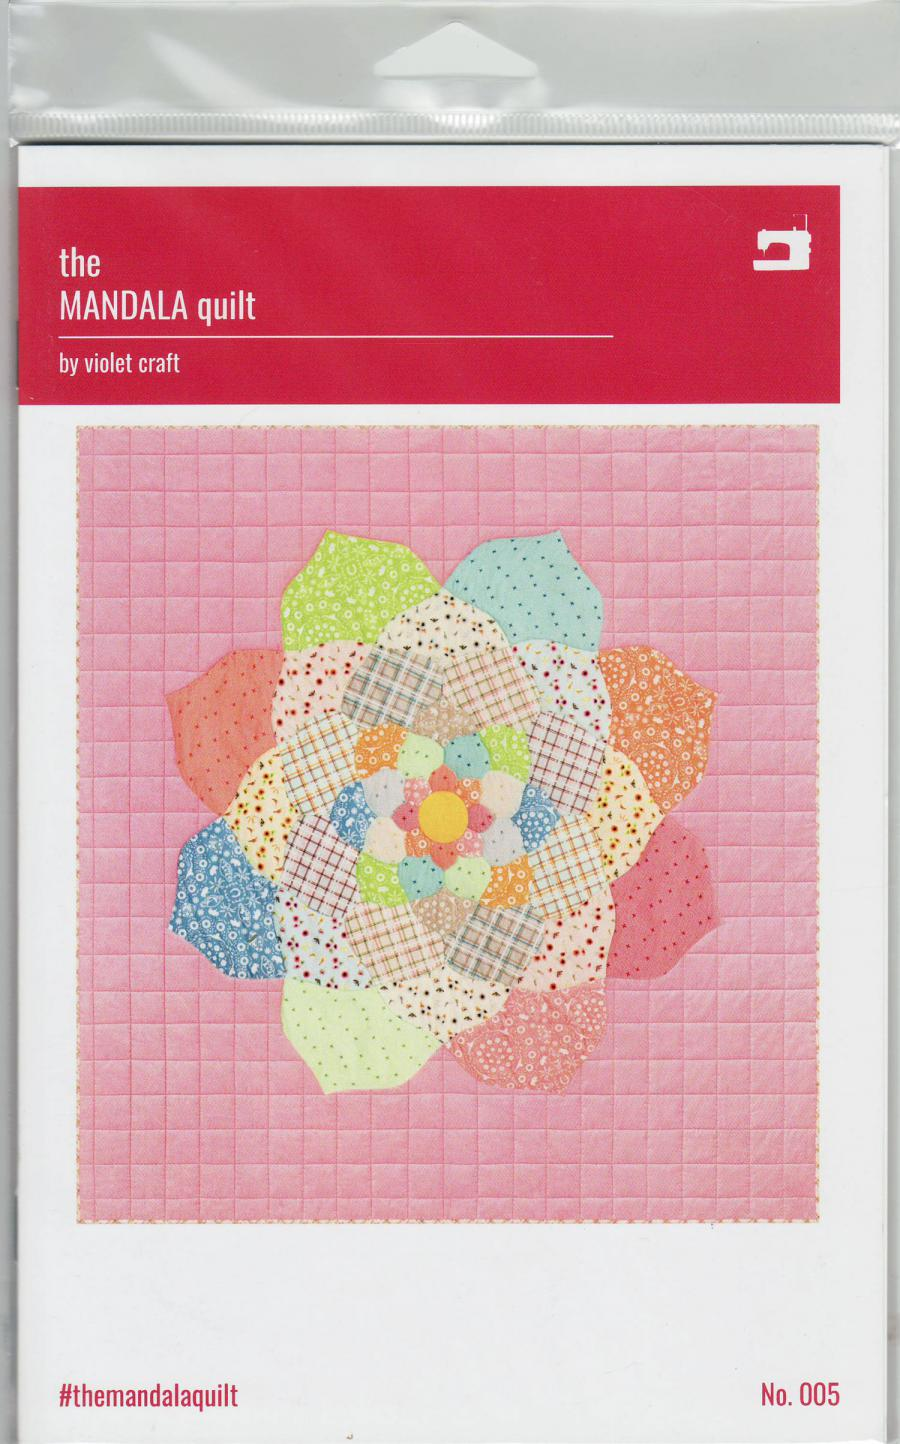 The Mandala quilt sewing pattern from Violet Craft